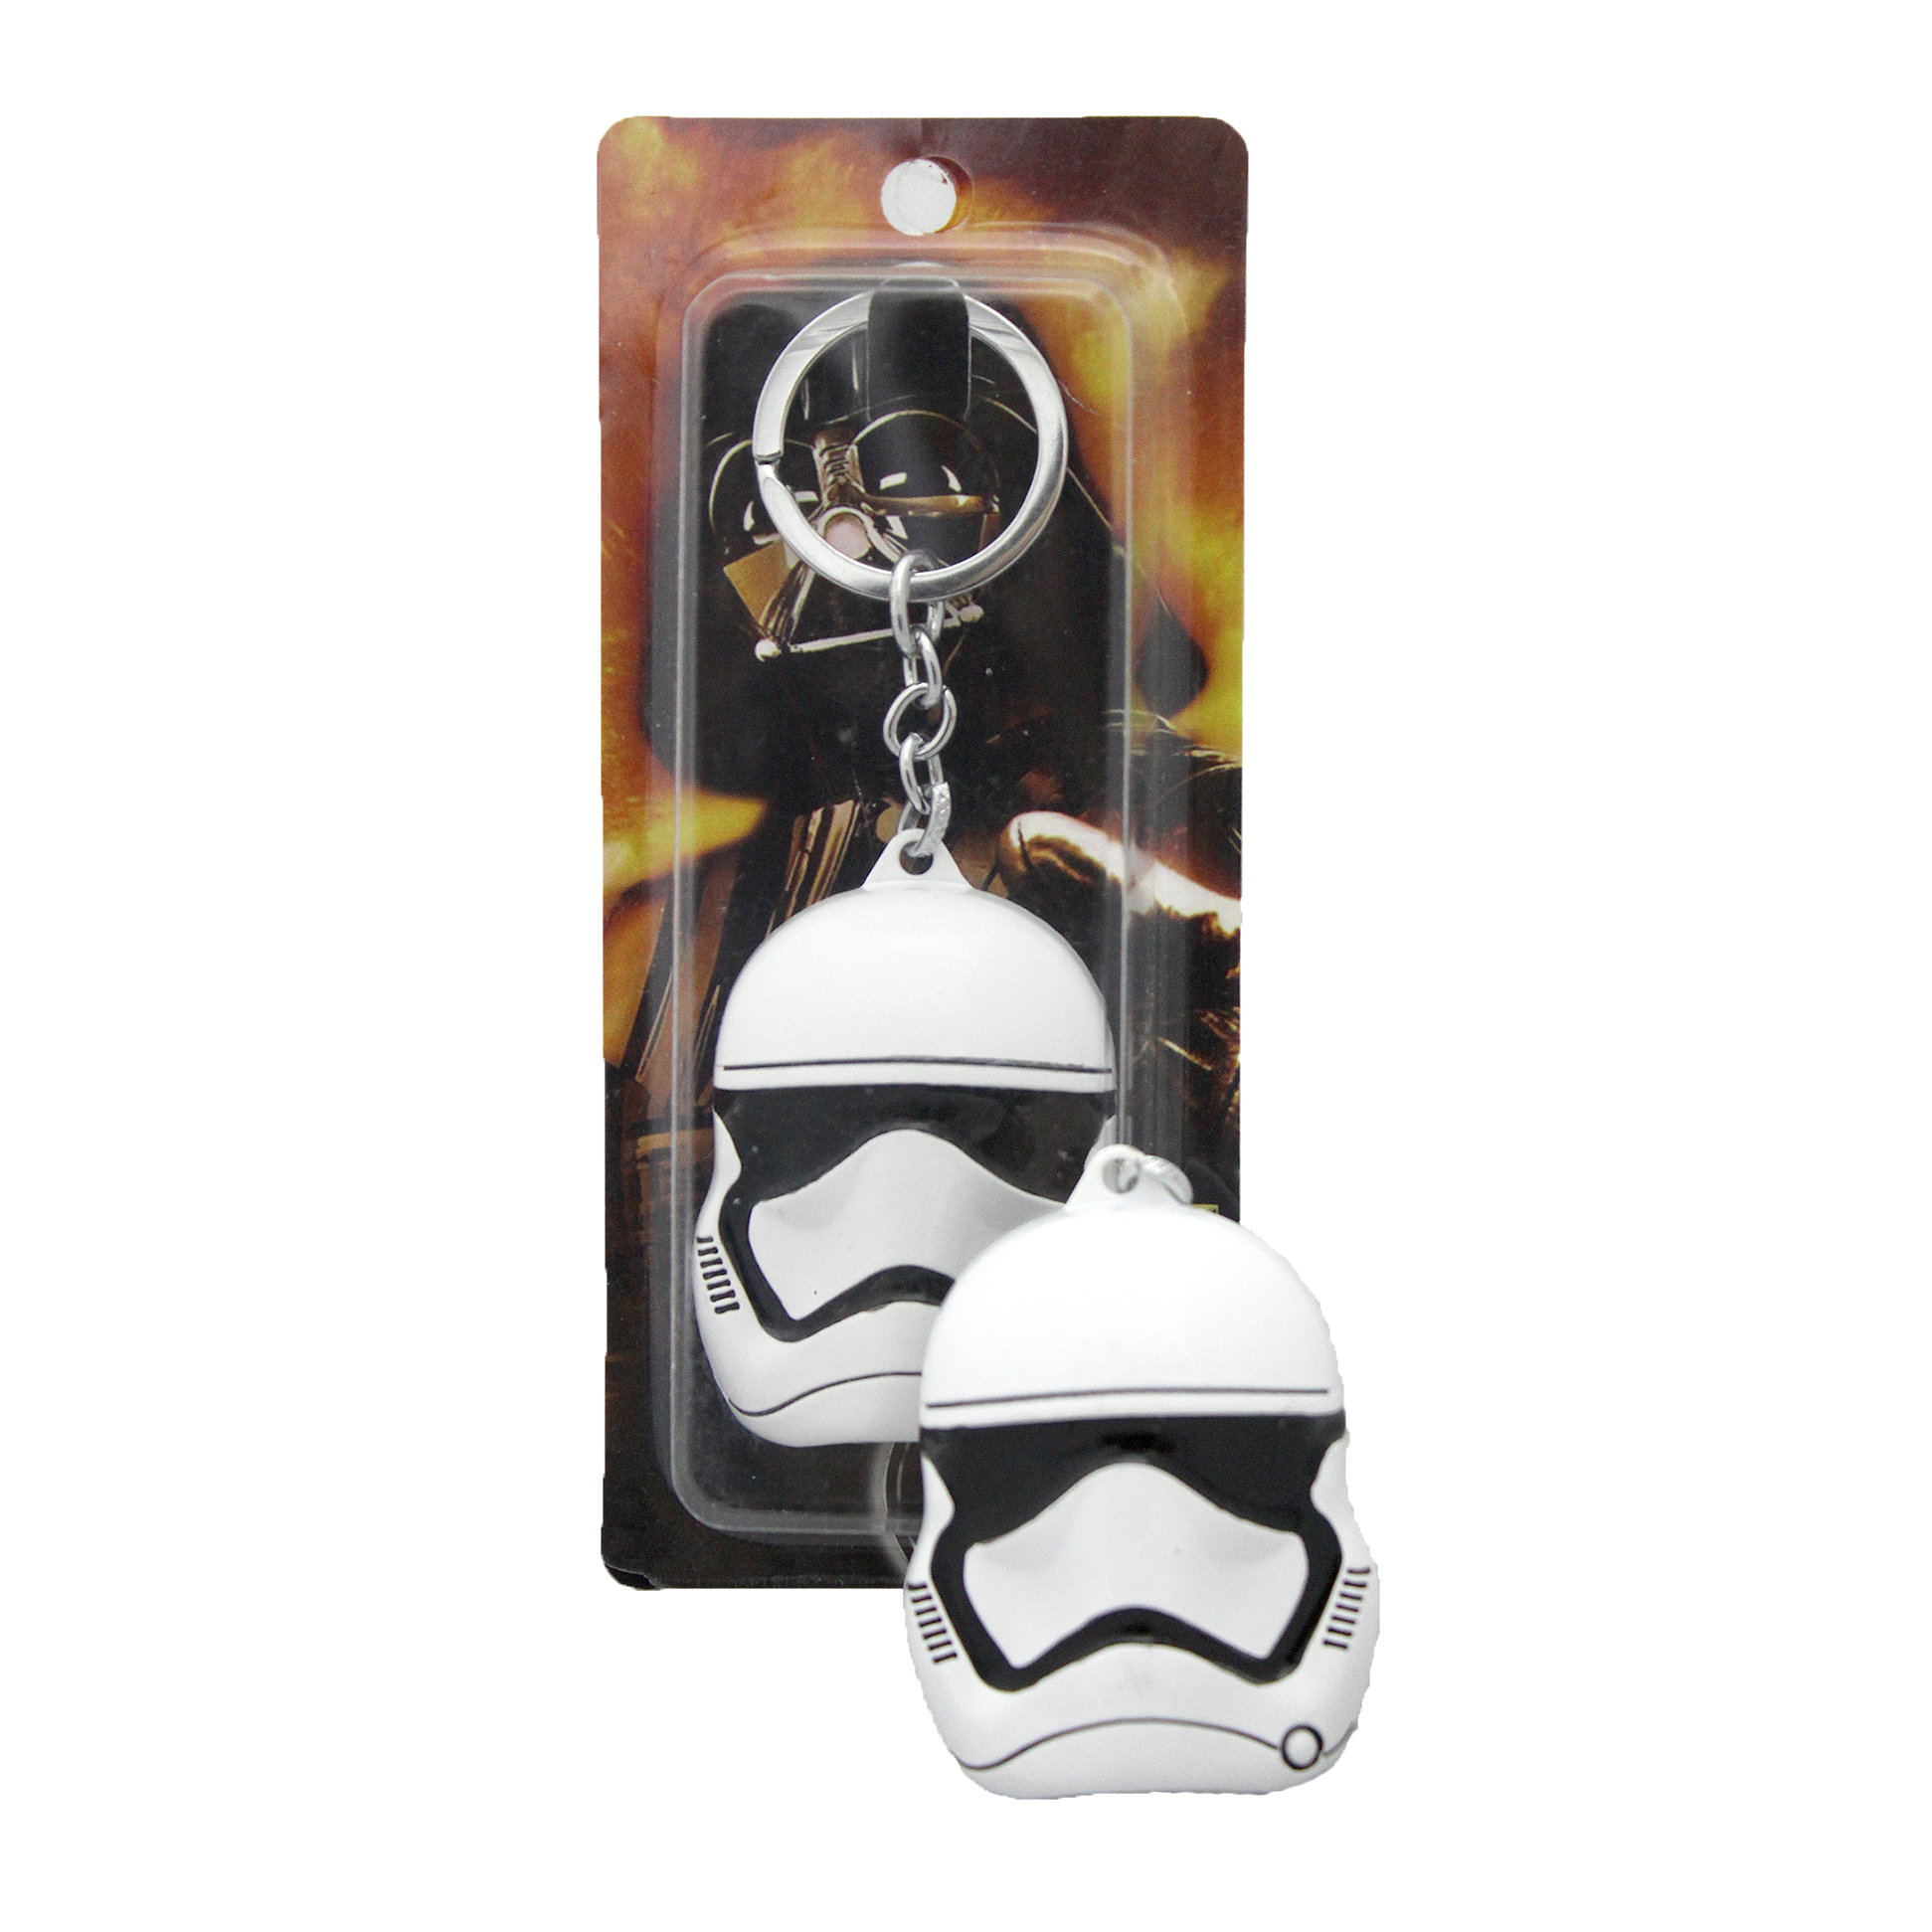 Star Wars Stormtrooper Key Chain End 1272019 909 Pm